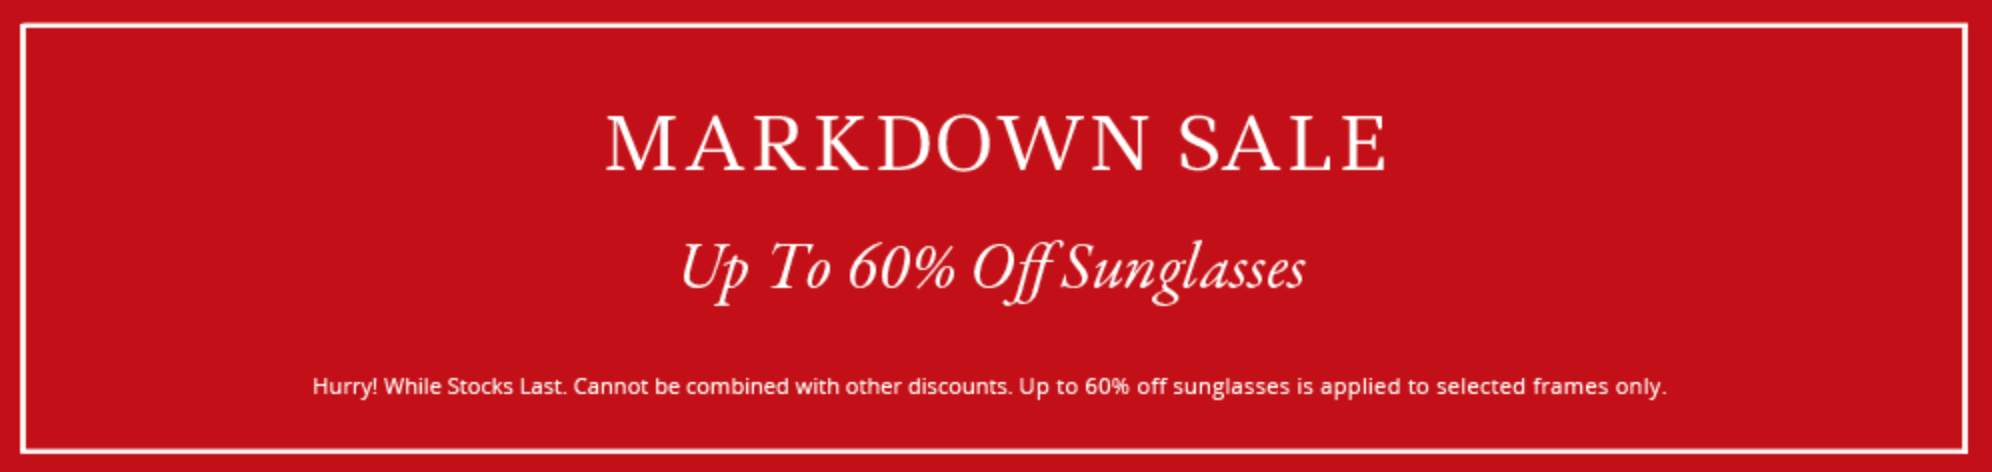 Eye Wear Brands: Sale up to 60% off sunglasses